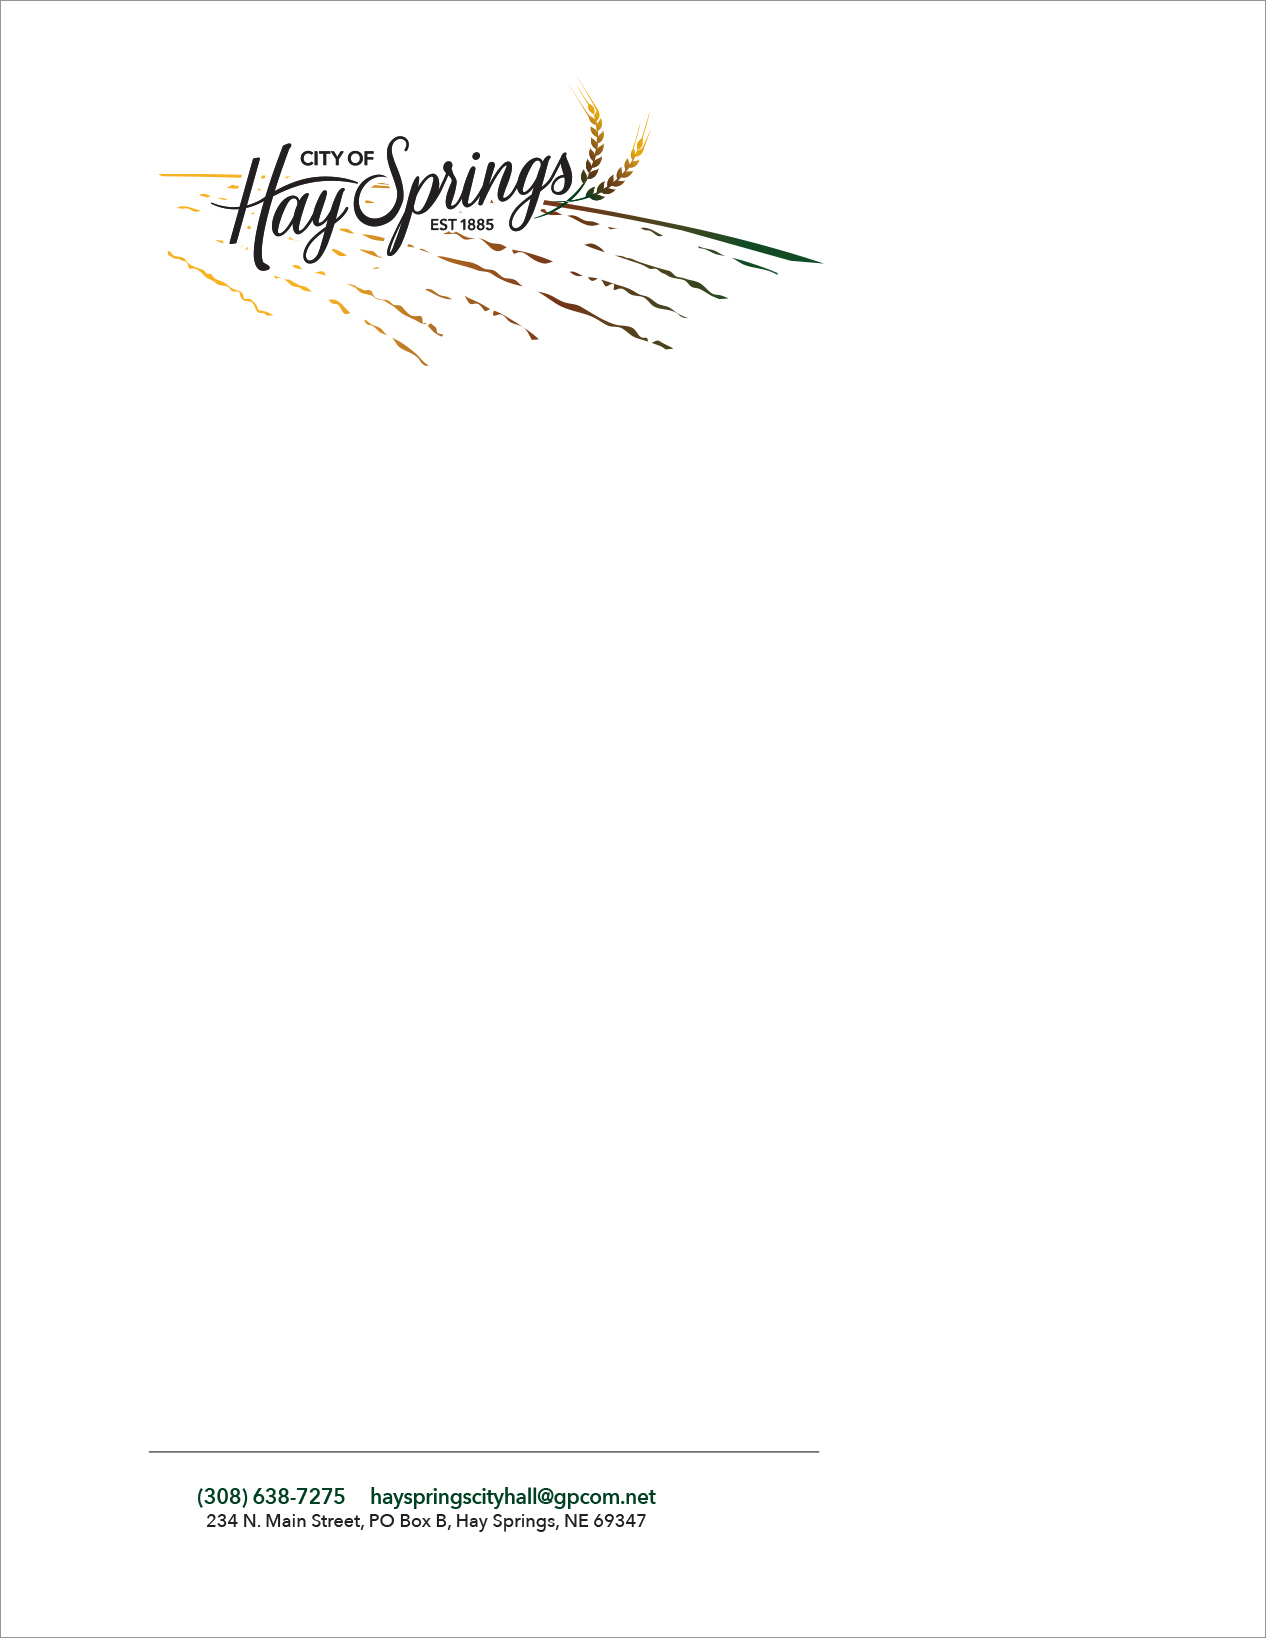 City of Hay Springs Letterhead